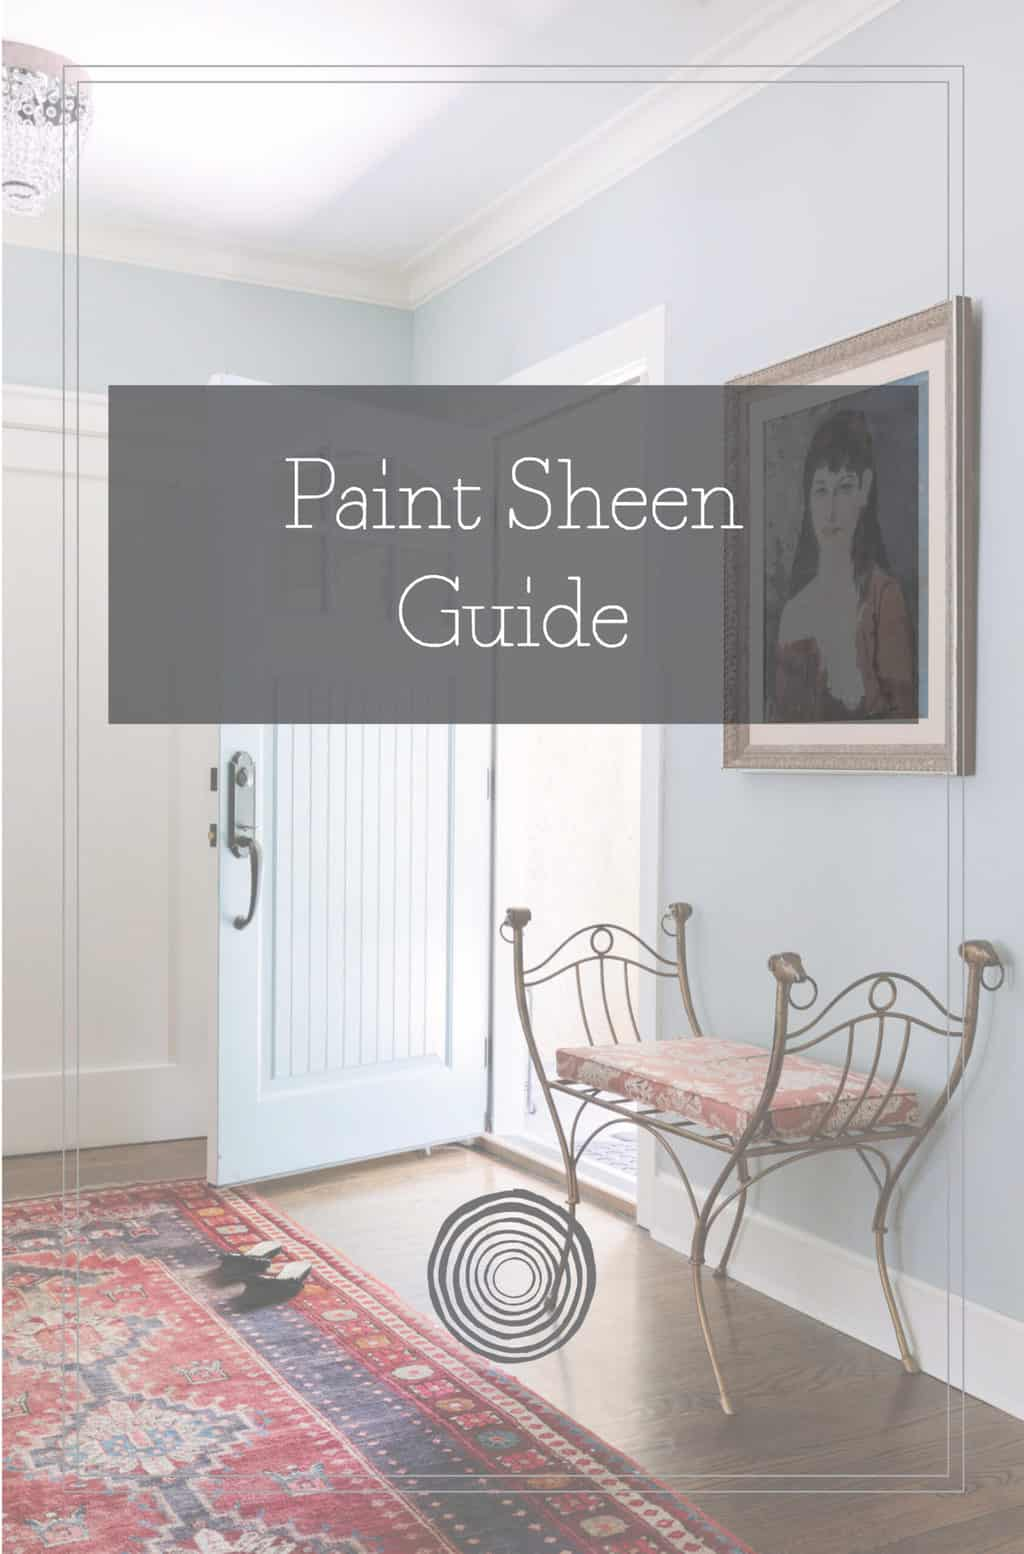 Paint Sheen Guide PDF